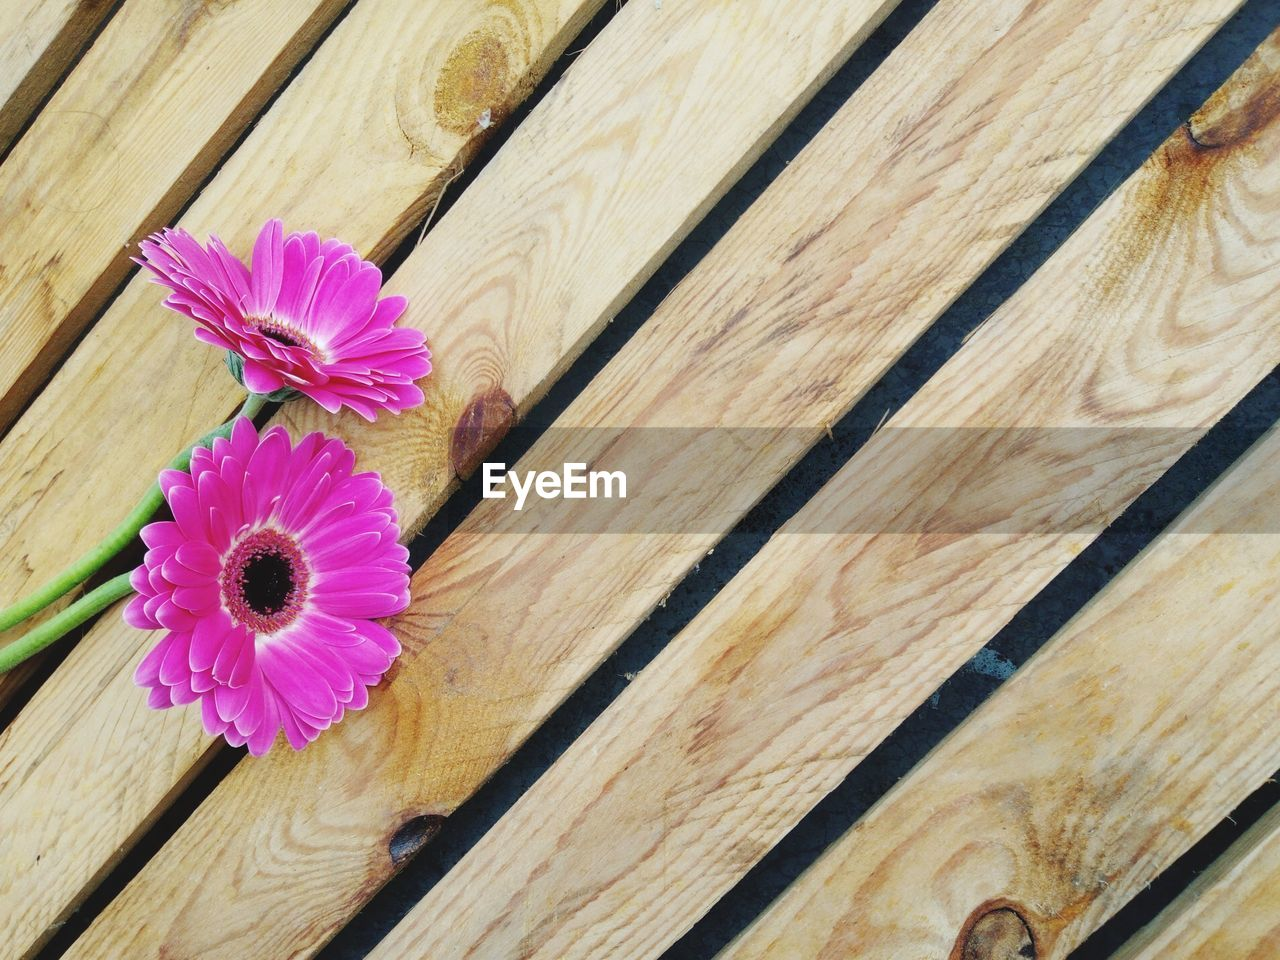 flower, flowering plant, wood - material, freshness, close-up, plant, vulnerability, fragility, pink color, petal, flower head, inflorescence, no people, beauty in nature, nature, growth, indoors, full frame, directly above, wood, purple, wood grain